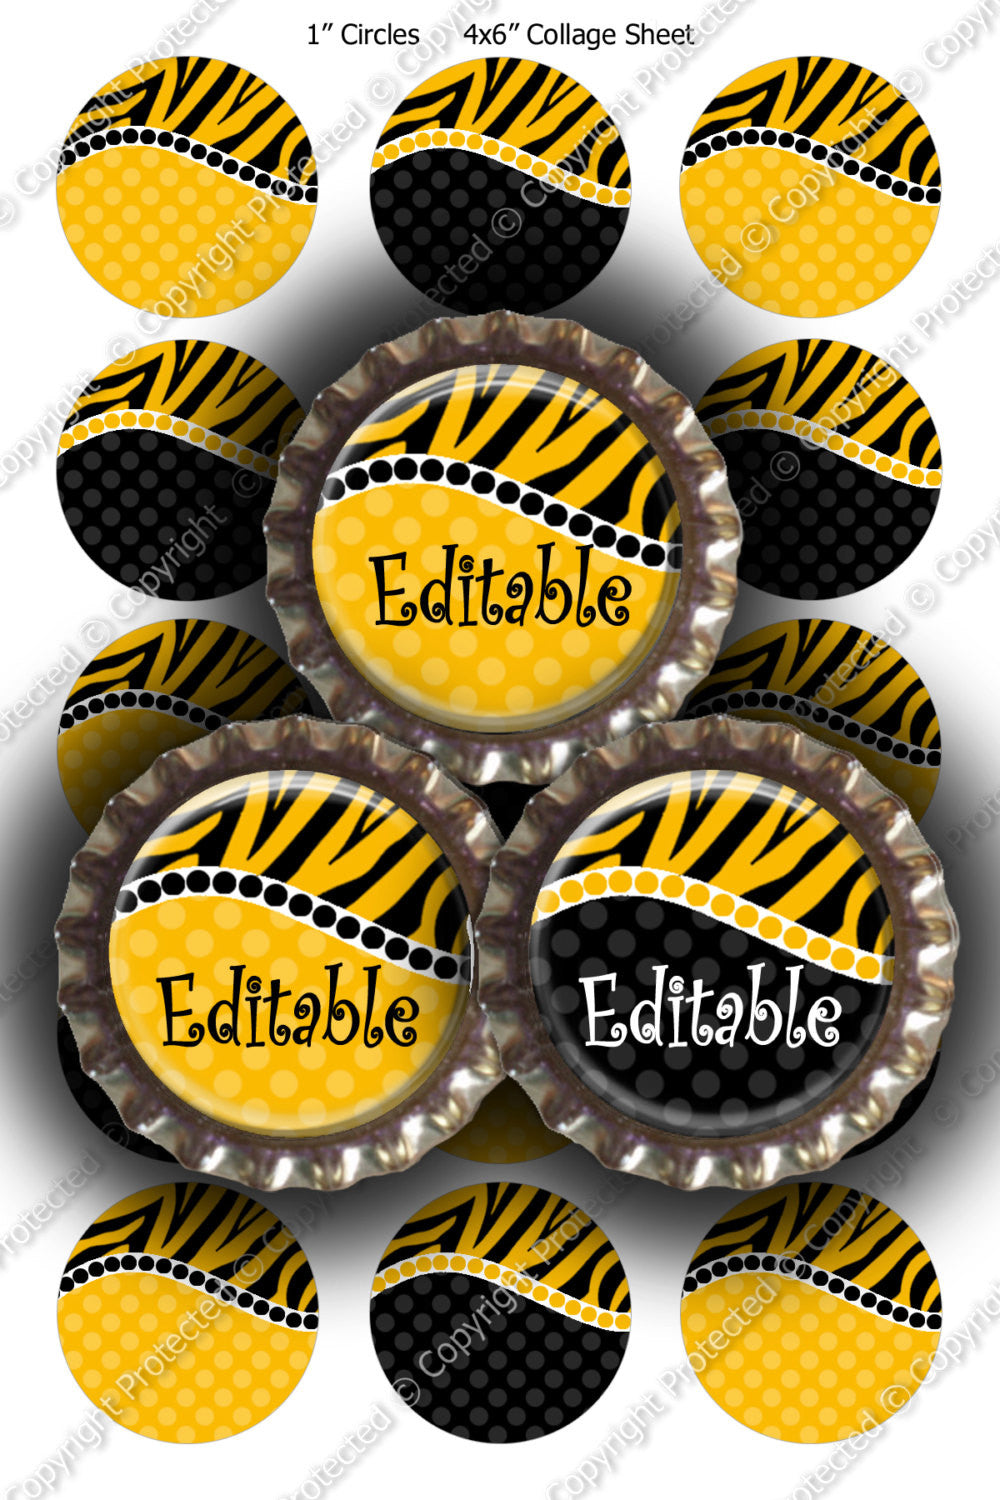 Editable Bottle Cap Images - Instant Download JPG & PDF Formats - Zebra Yellow Curve (ET143) Digital Bottlecap Collage Sheet